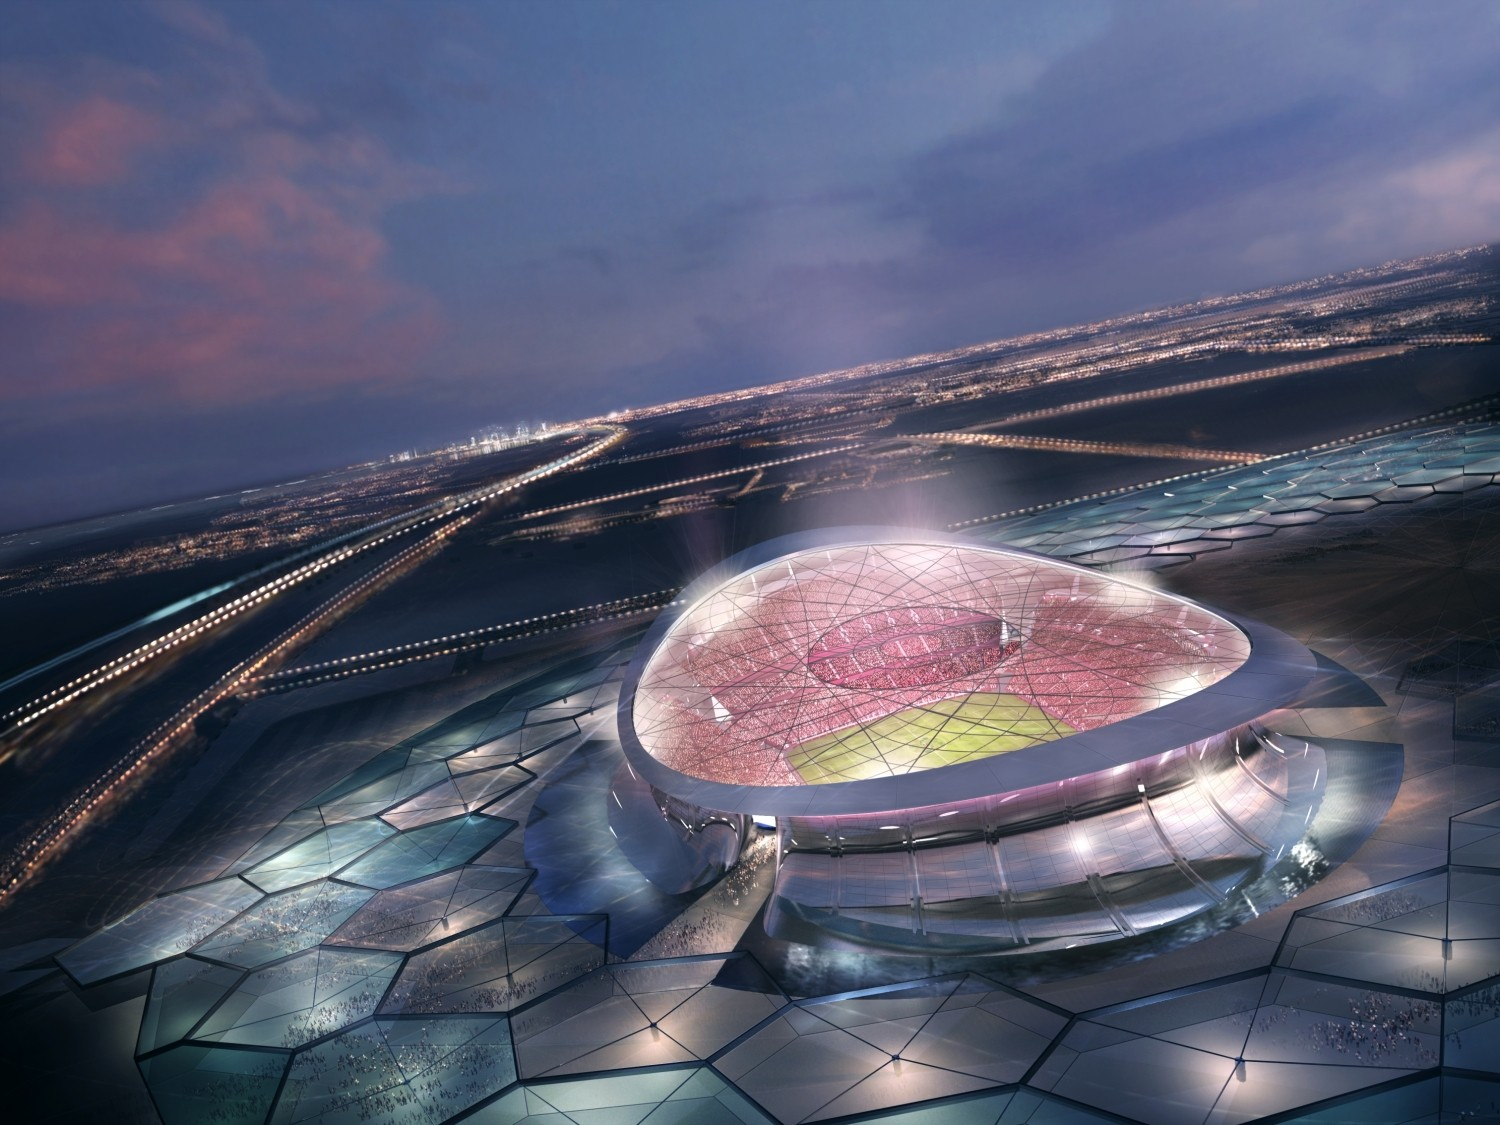 Foster and Chipperfield Among Firms Shortlisted for Qatar's 2022 Centerpiece, Foster + Partners' Previous Design for the 'Lusail Iconic Stadium' which formed part of Qatar's bid for the World Cup. Image © Foster + Partners